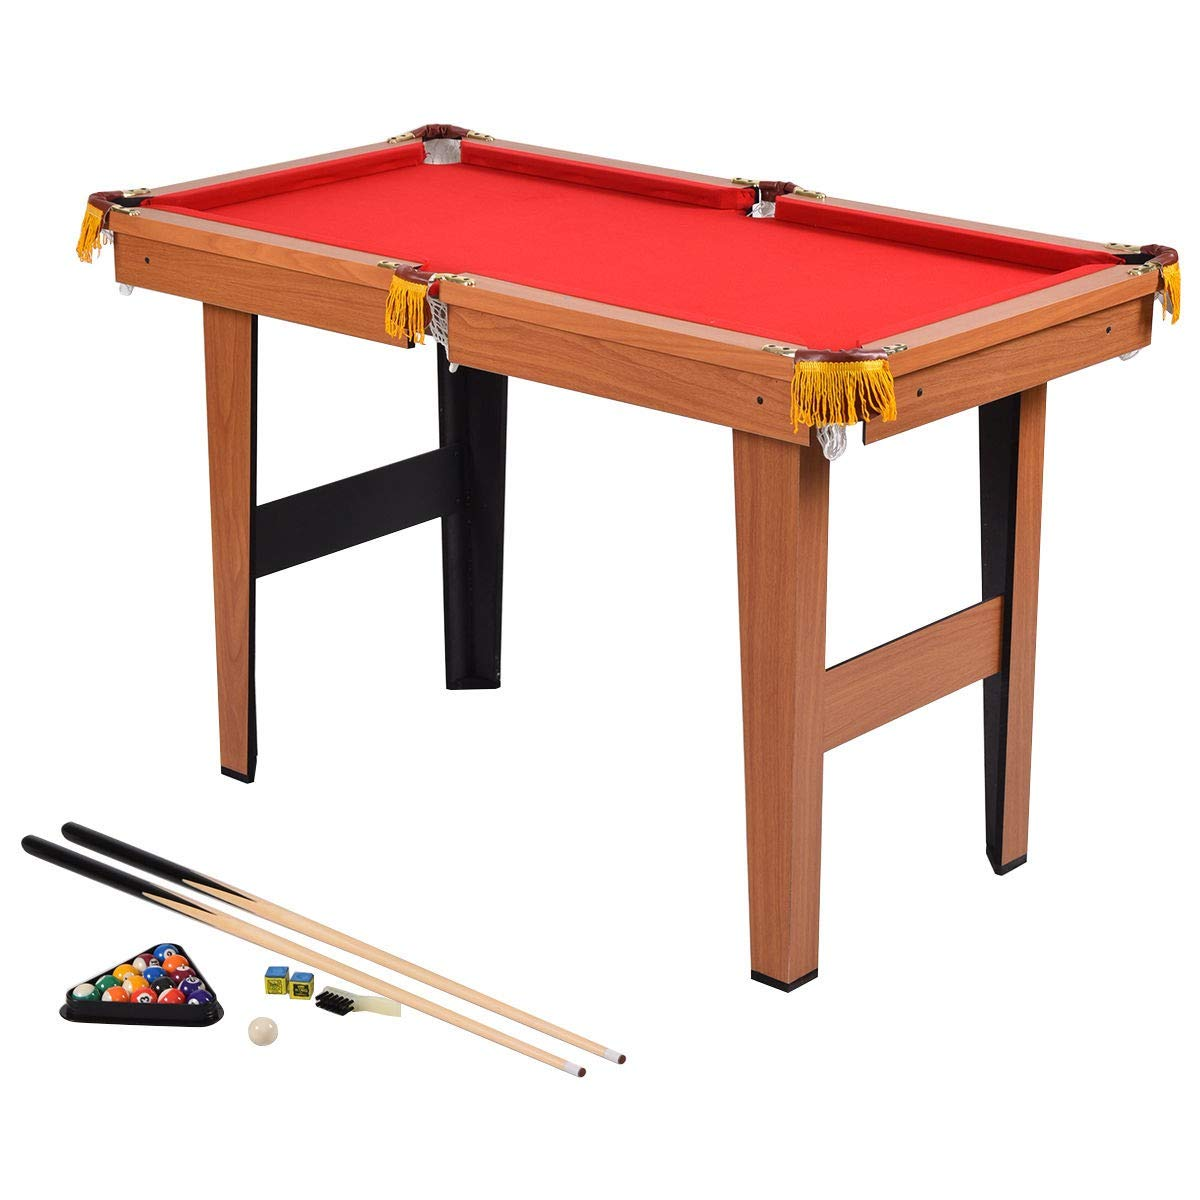 Dayanaprincess 48'' Mini Table Pool Table Game Billiard Set Outdoor Indoor Play Home Party Playroom Entertainment Games Group Team Competition by Dayanaprincess